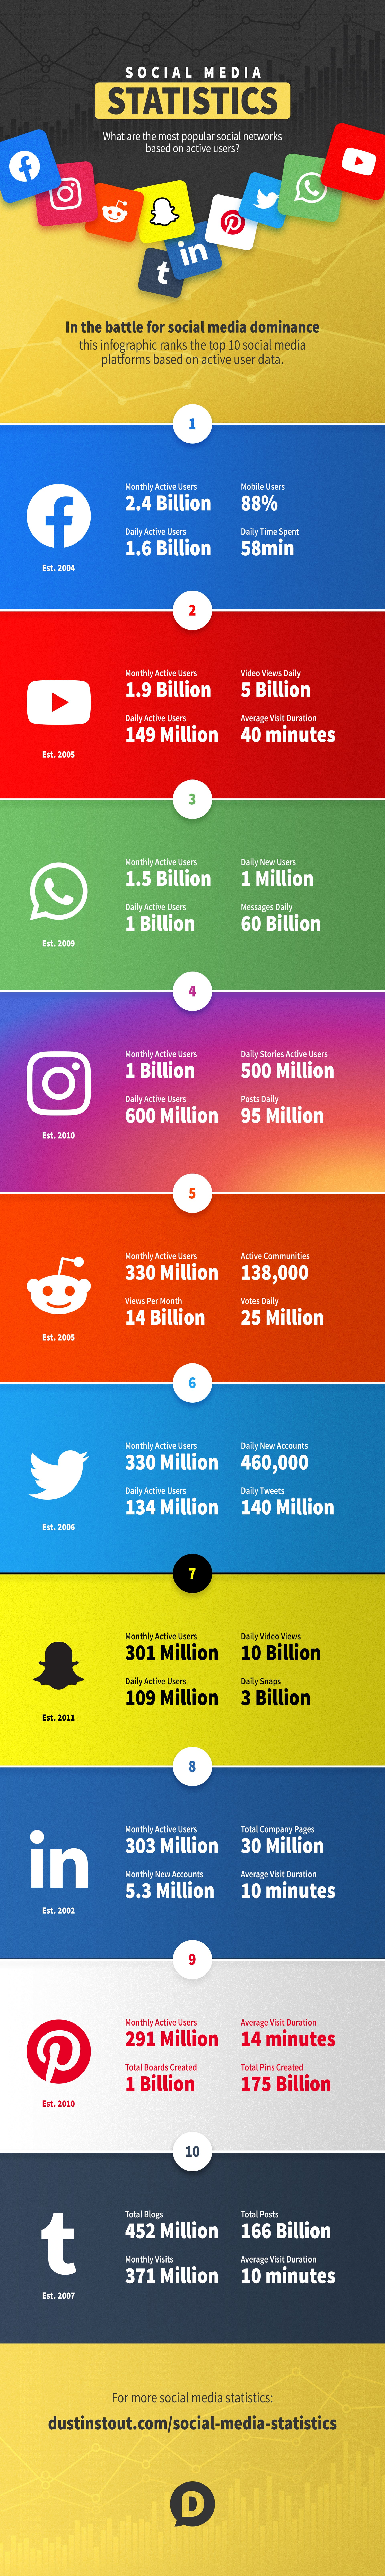 Social Media Statistics 2021: Top Networks By the Numbers